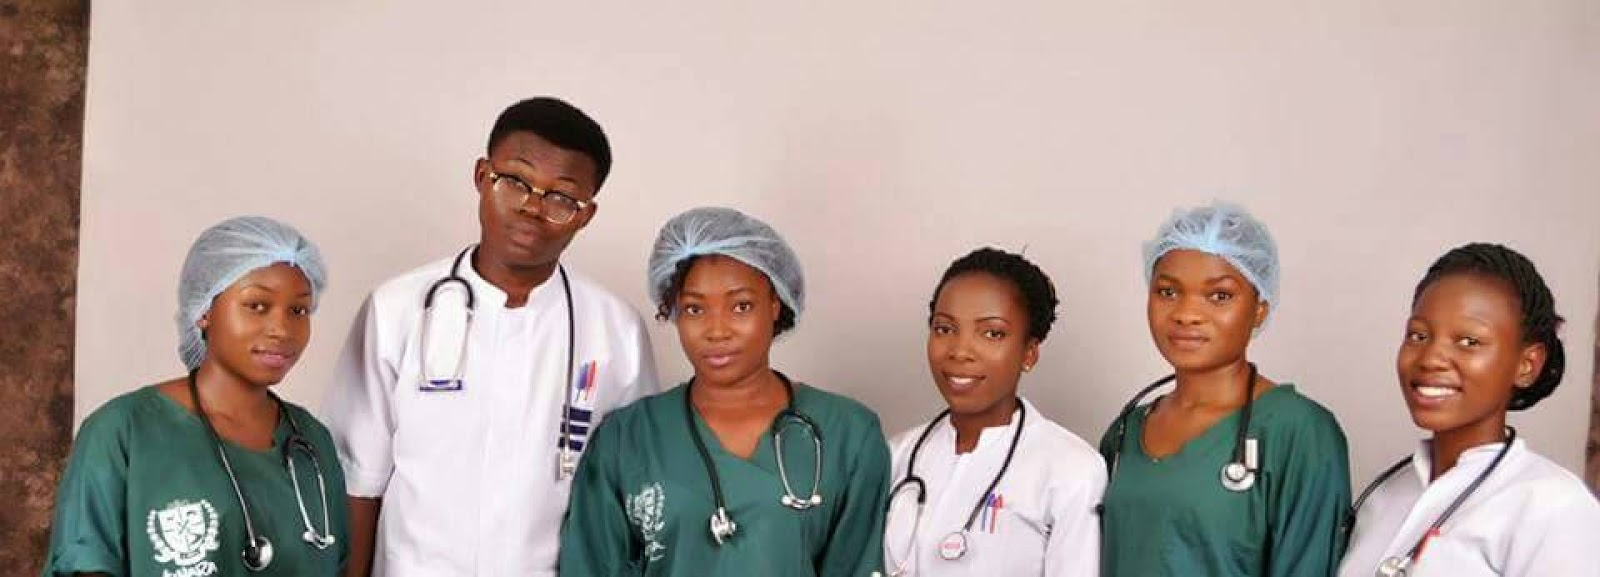 School of School of Post Basic A&E Nursing, National Orthopaedic Hospital, Igbobi, Lagos School Fees 2019